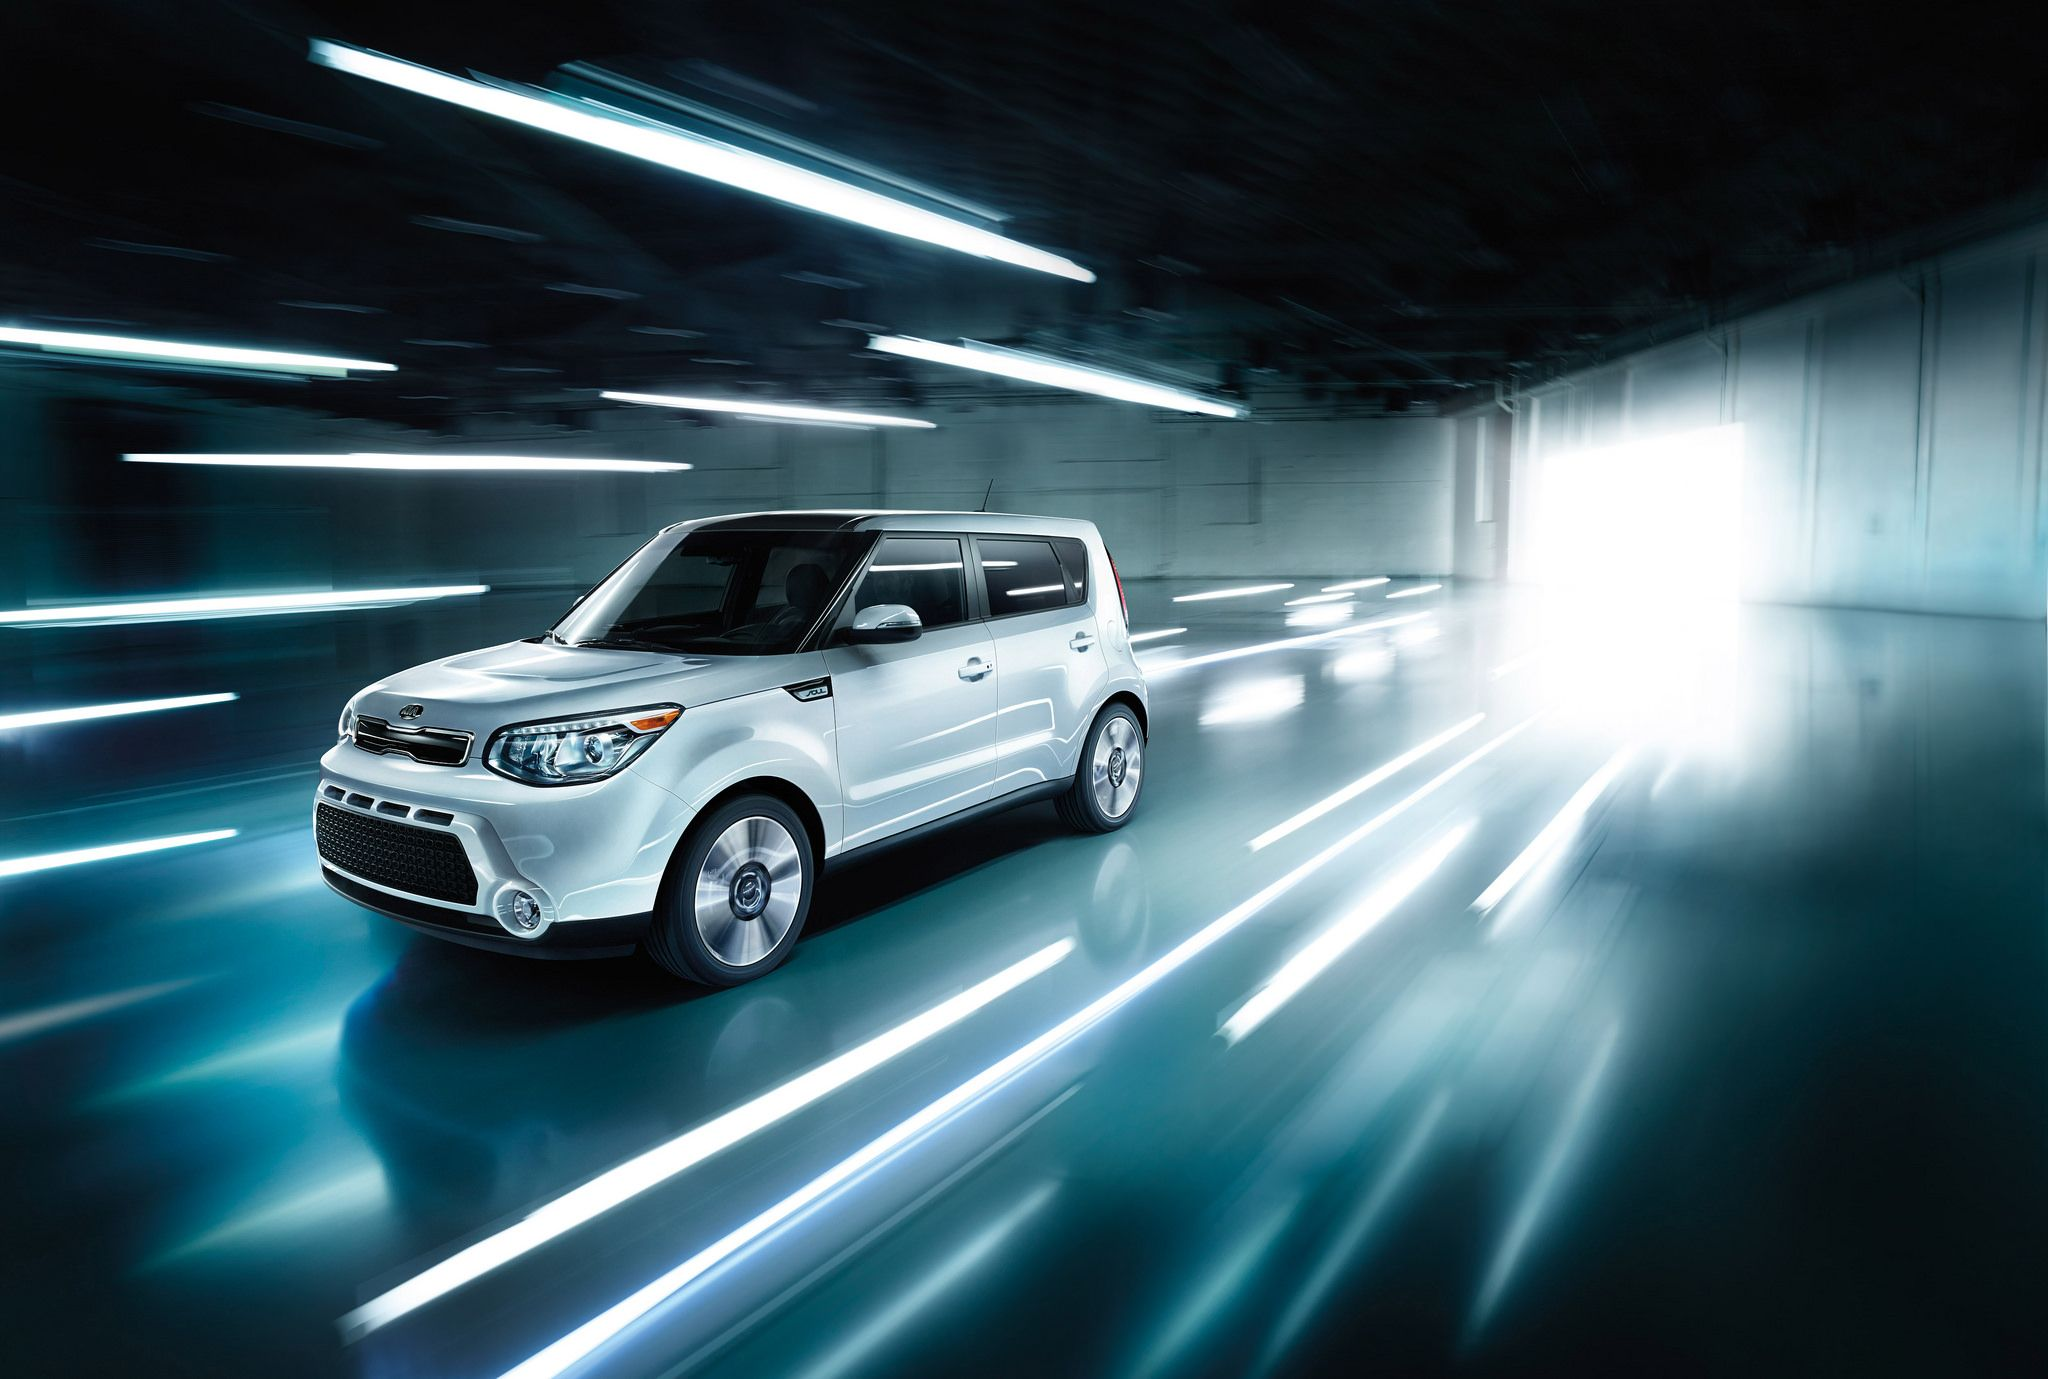 Two kia models made us news world report s best cars for families list find